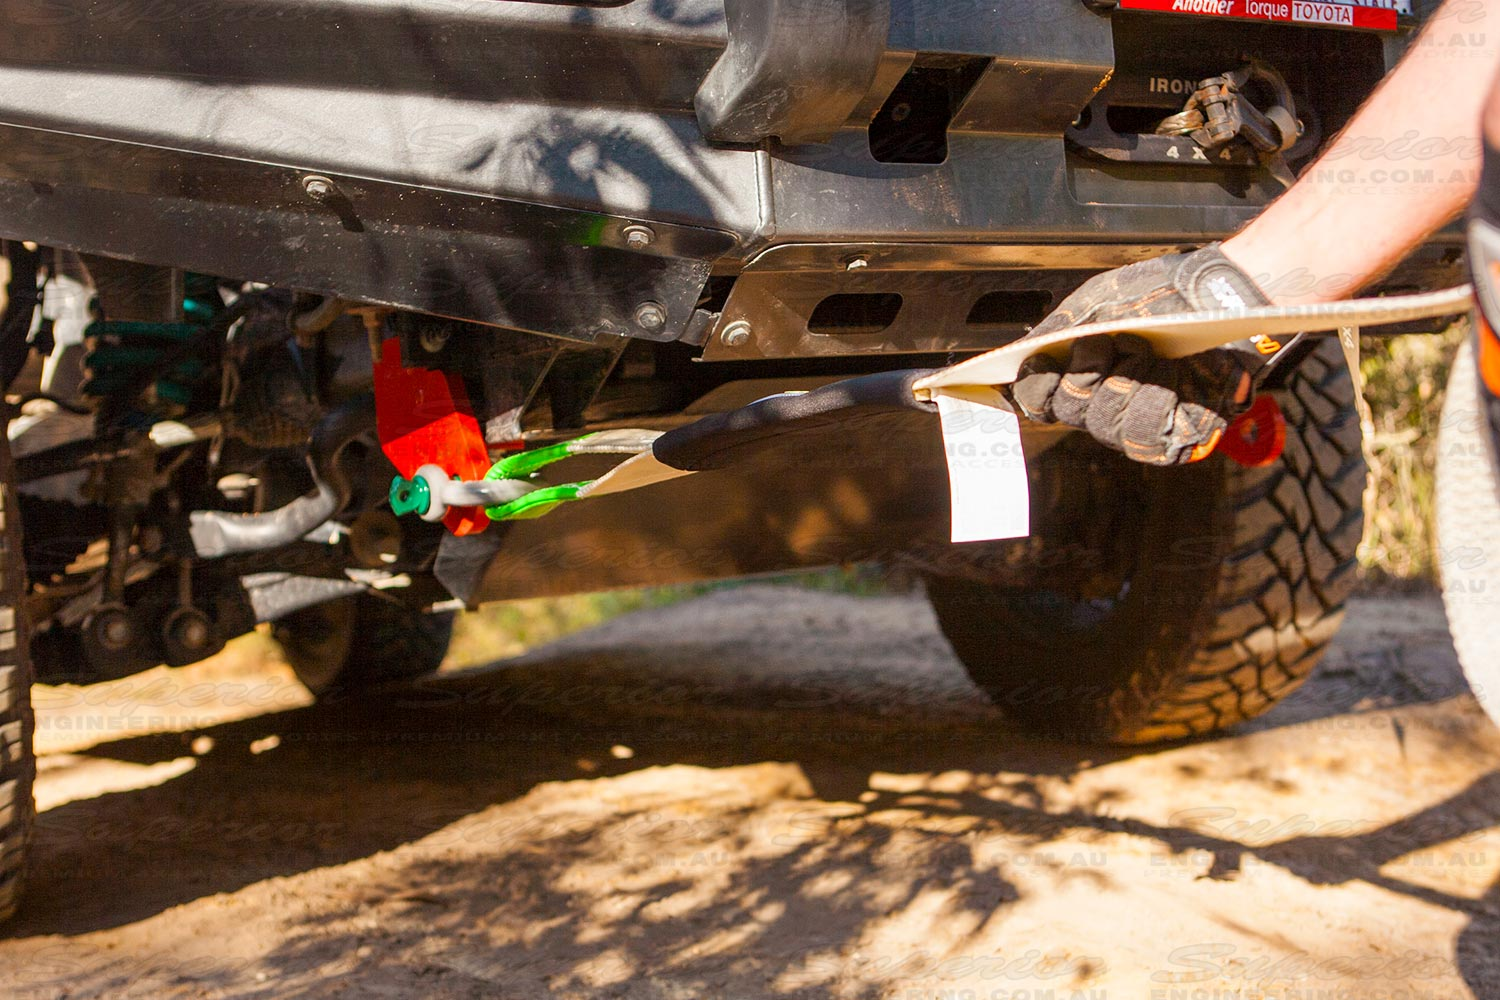 Performing a recovery on the 200 Series Landcruiser using the Superior rated recovery point